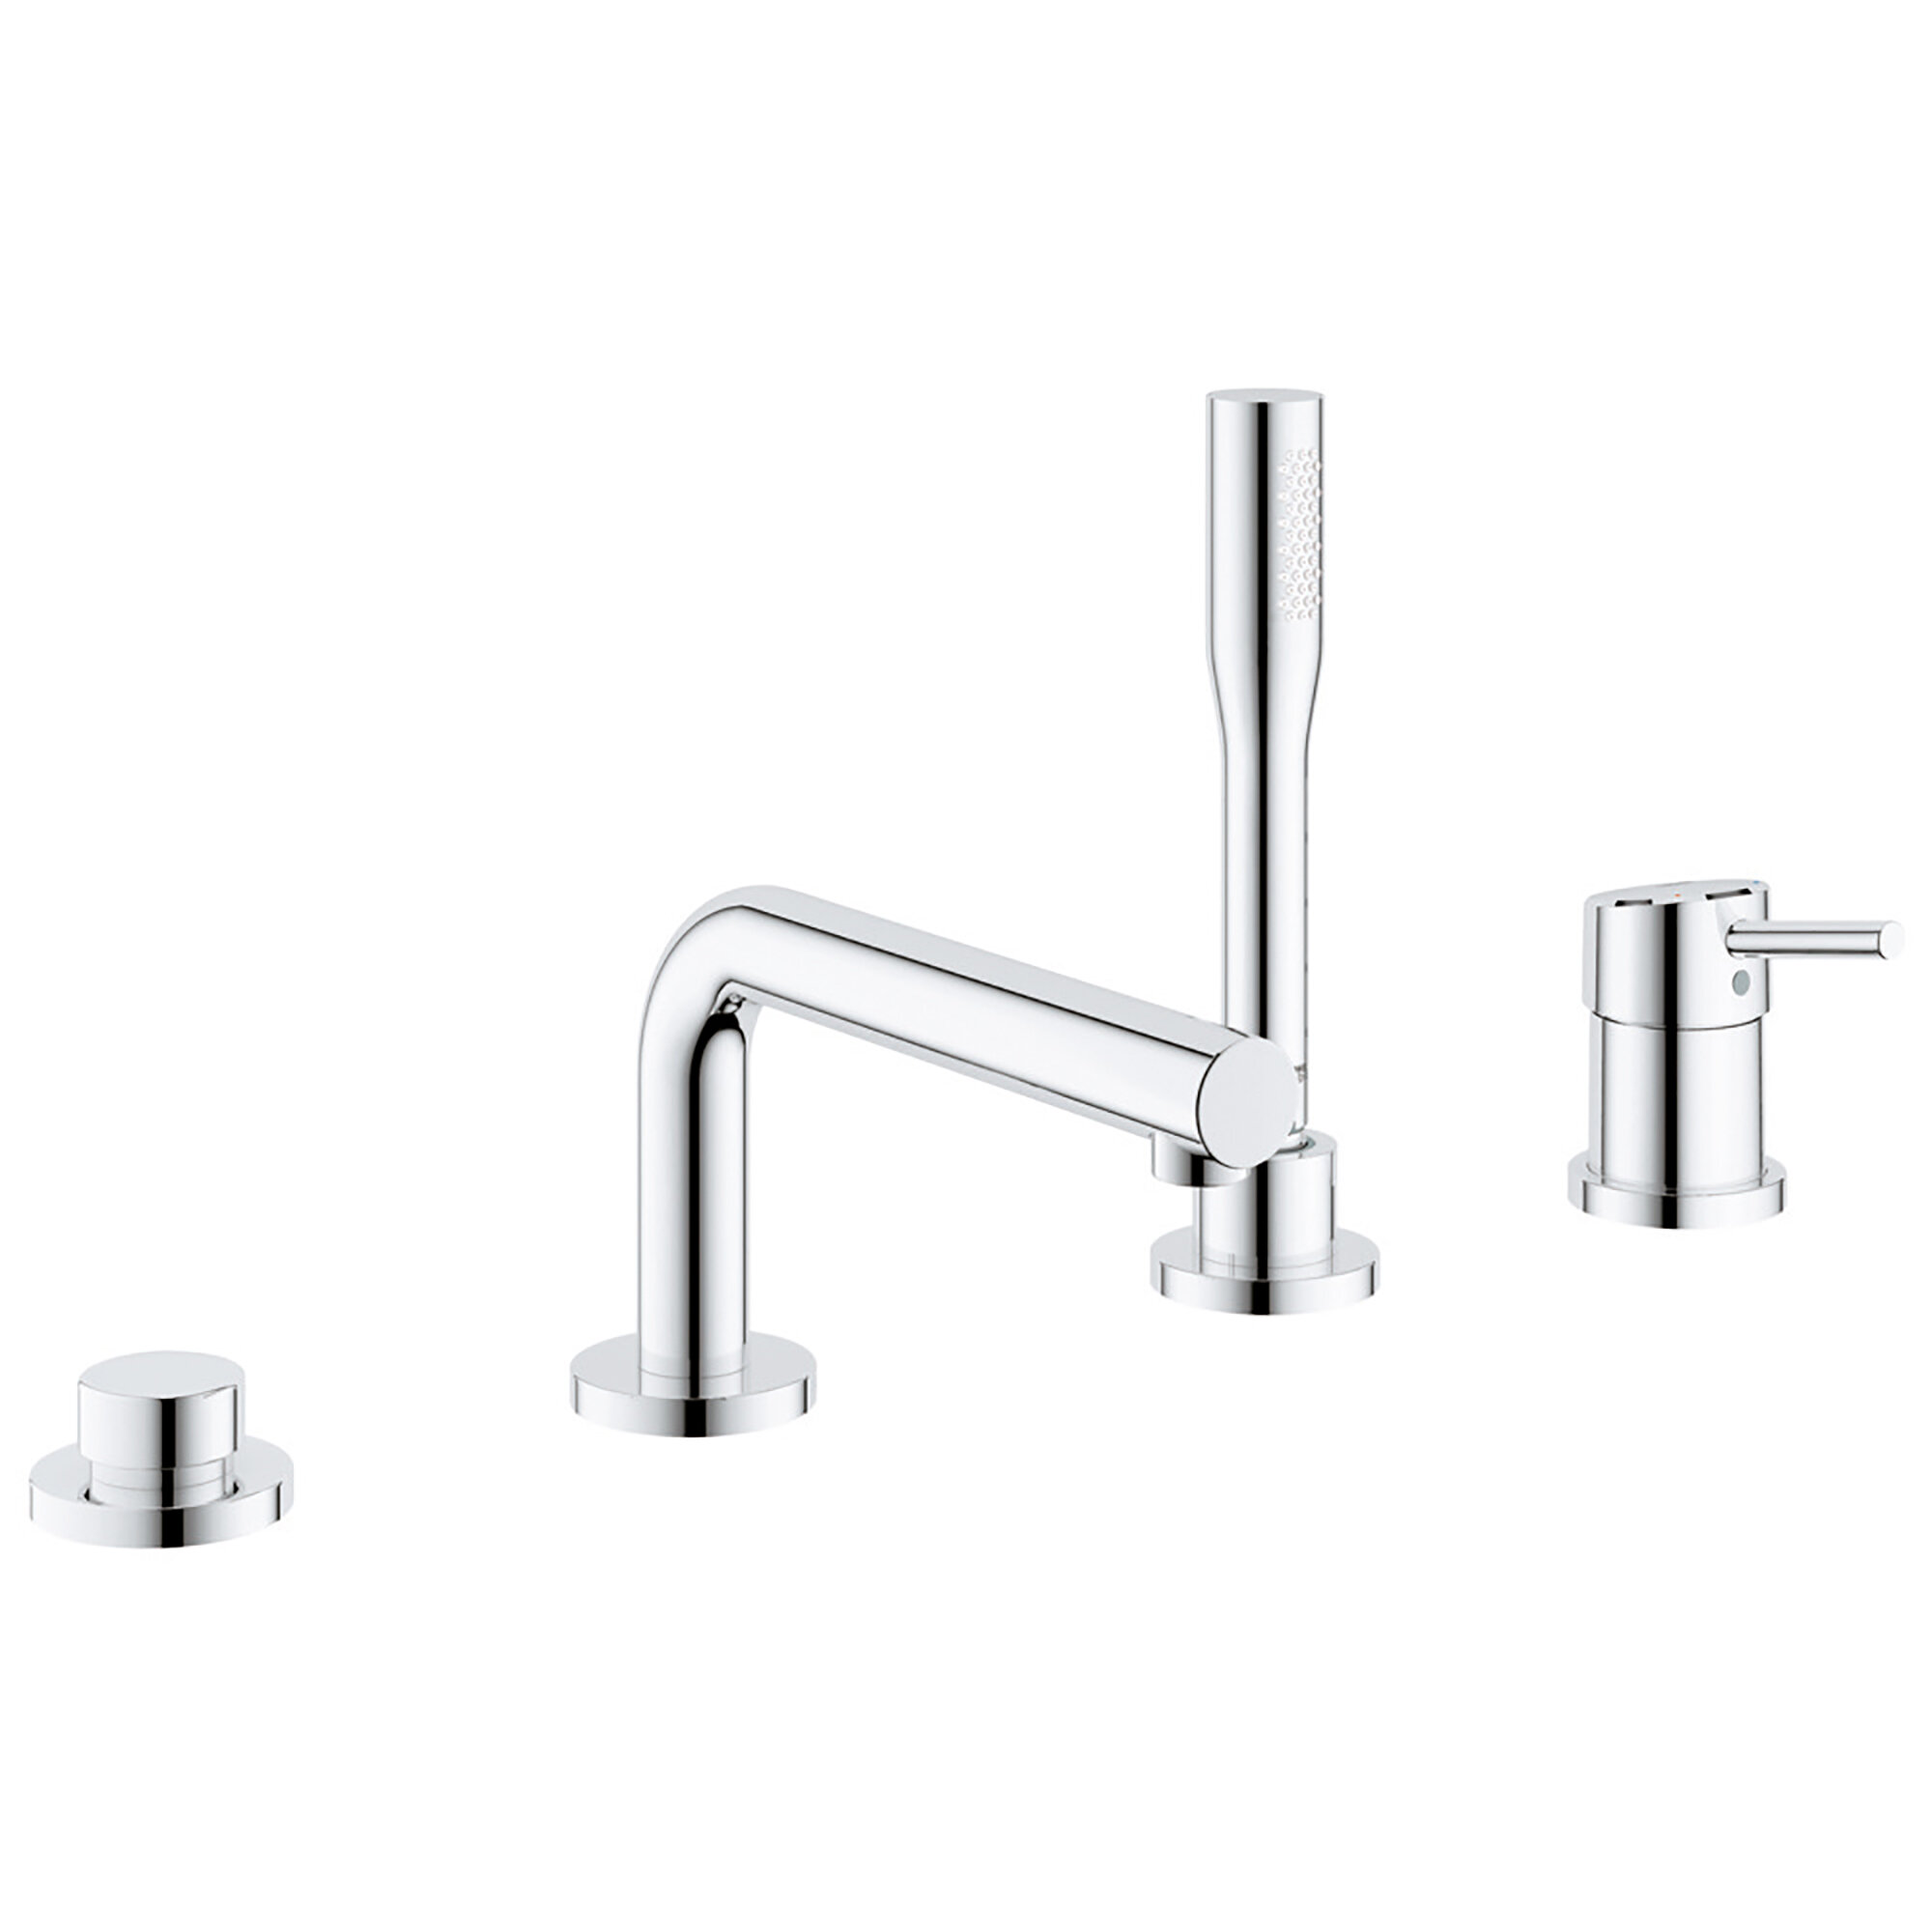 Grohe Concetto Single Handle Deck Mounted Roman Tub Faucet Trim With Diverter And Handshower Wayfair